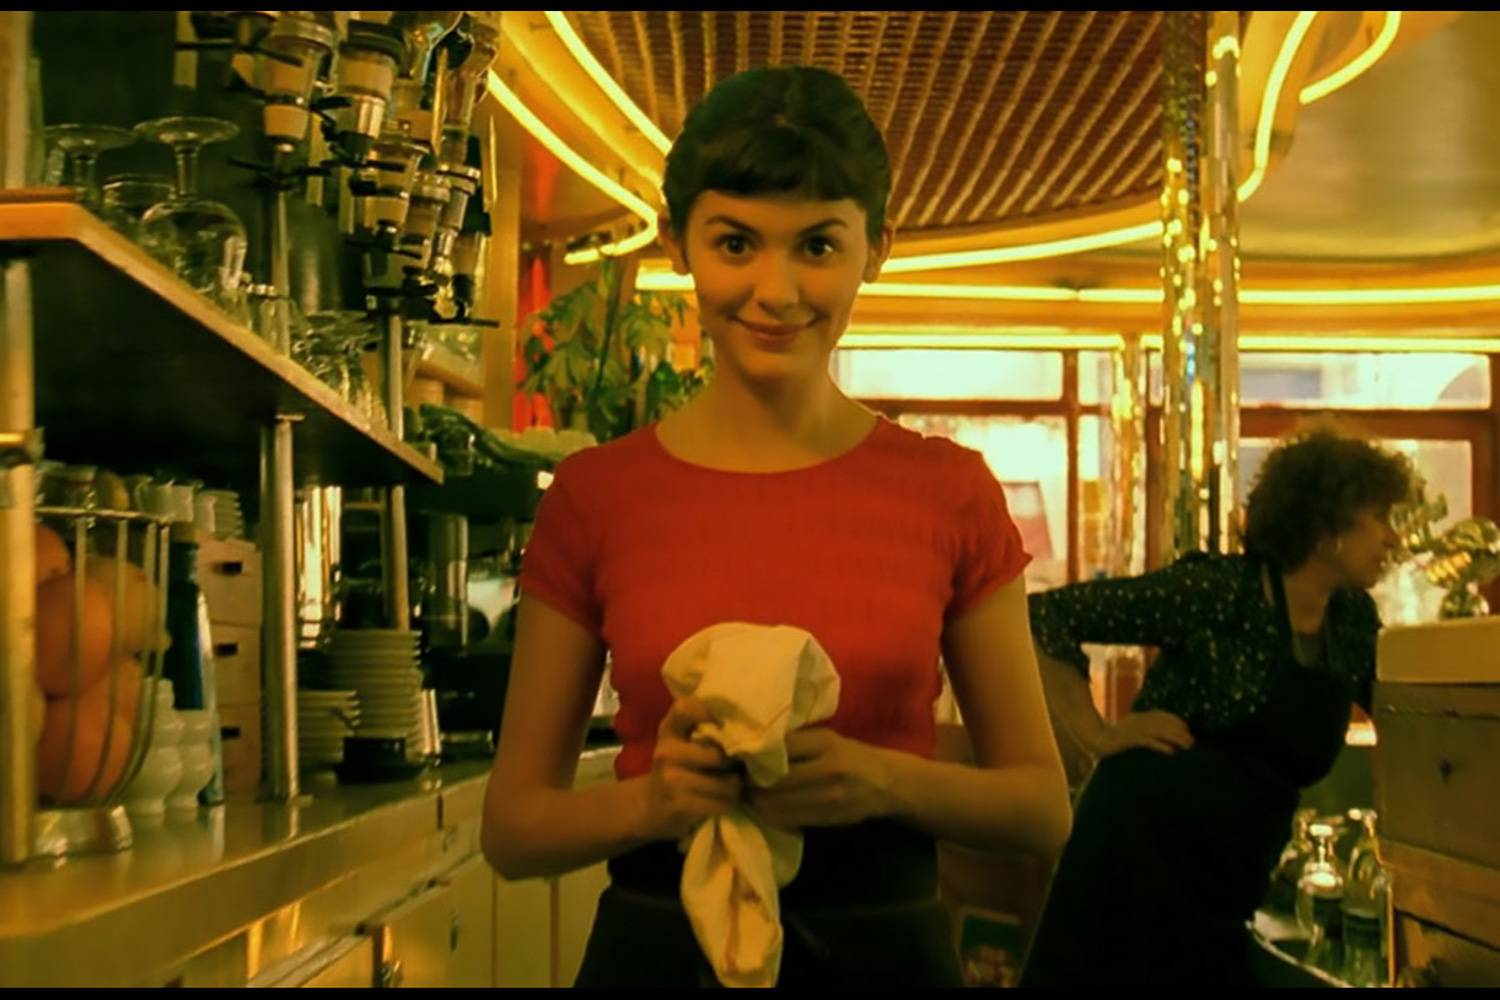 Image still of actress Audrey Tatou in Café des deux Moulins in the film Amelié.